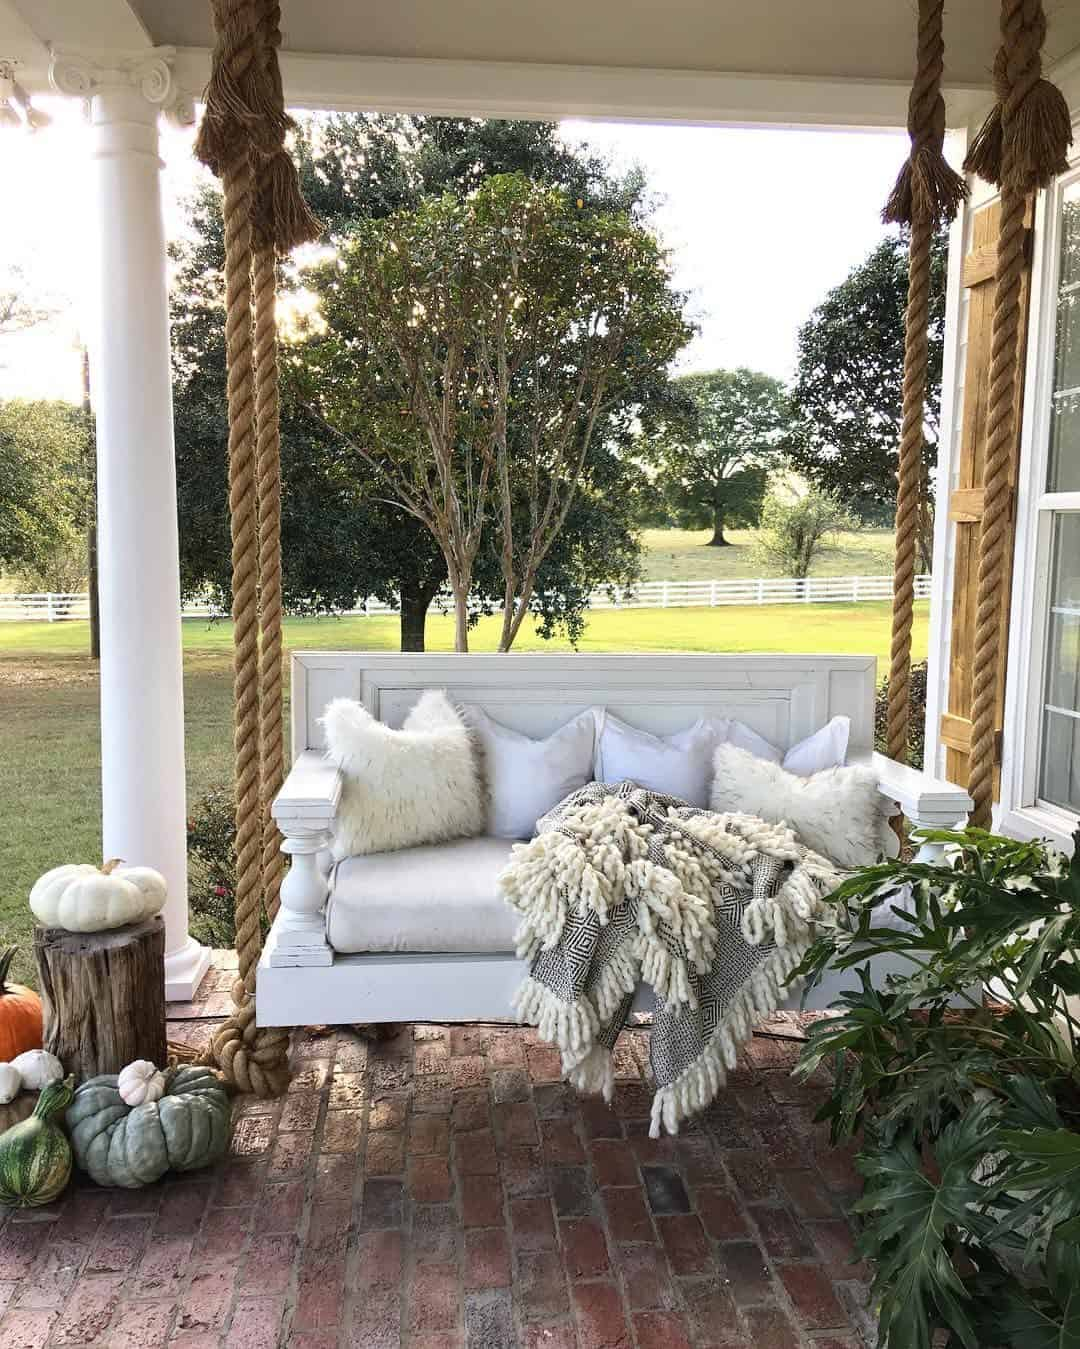 Rustic white back porch swing